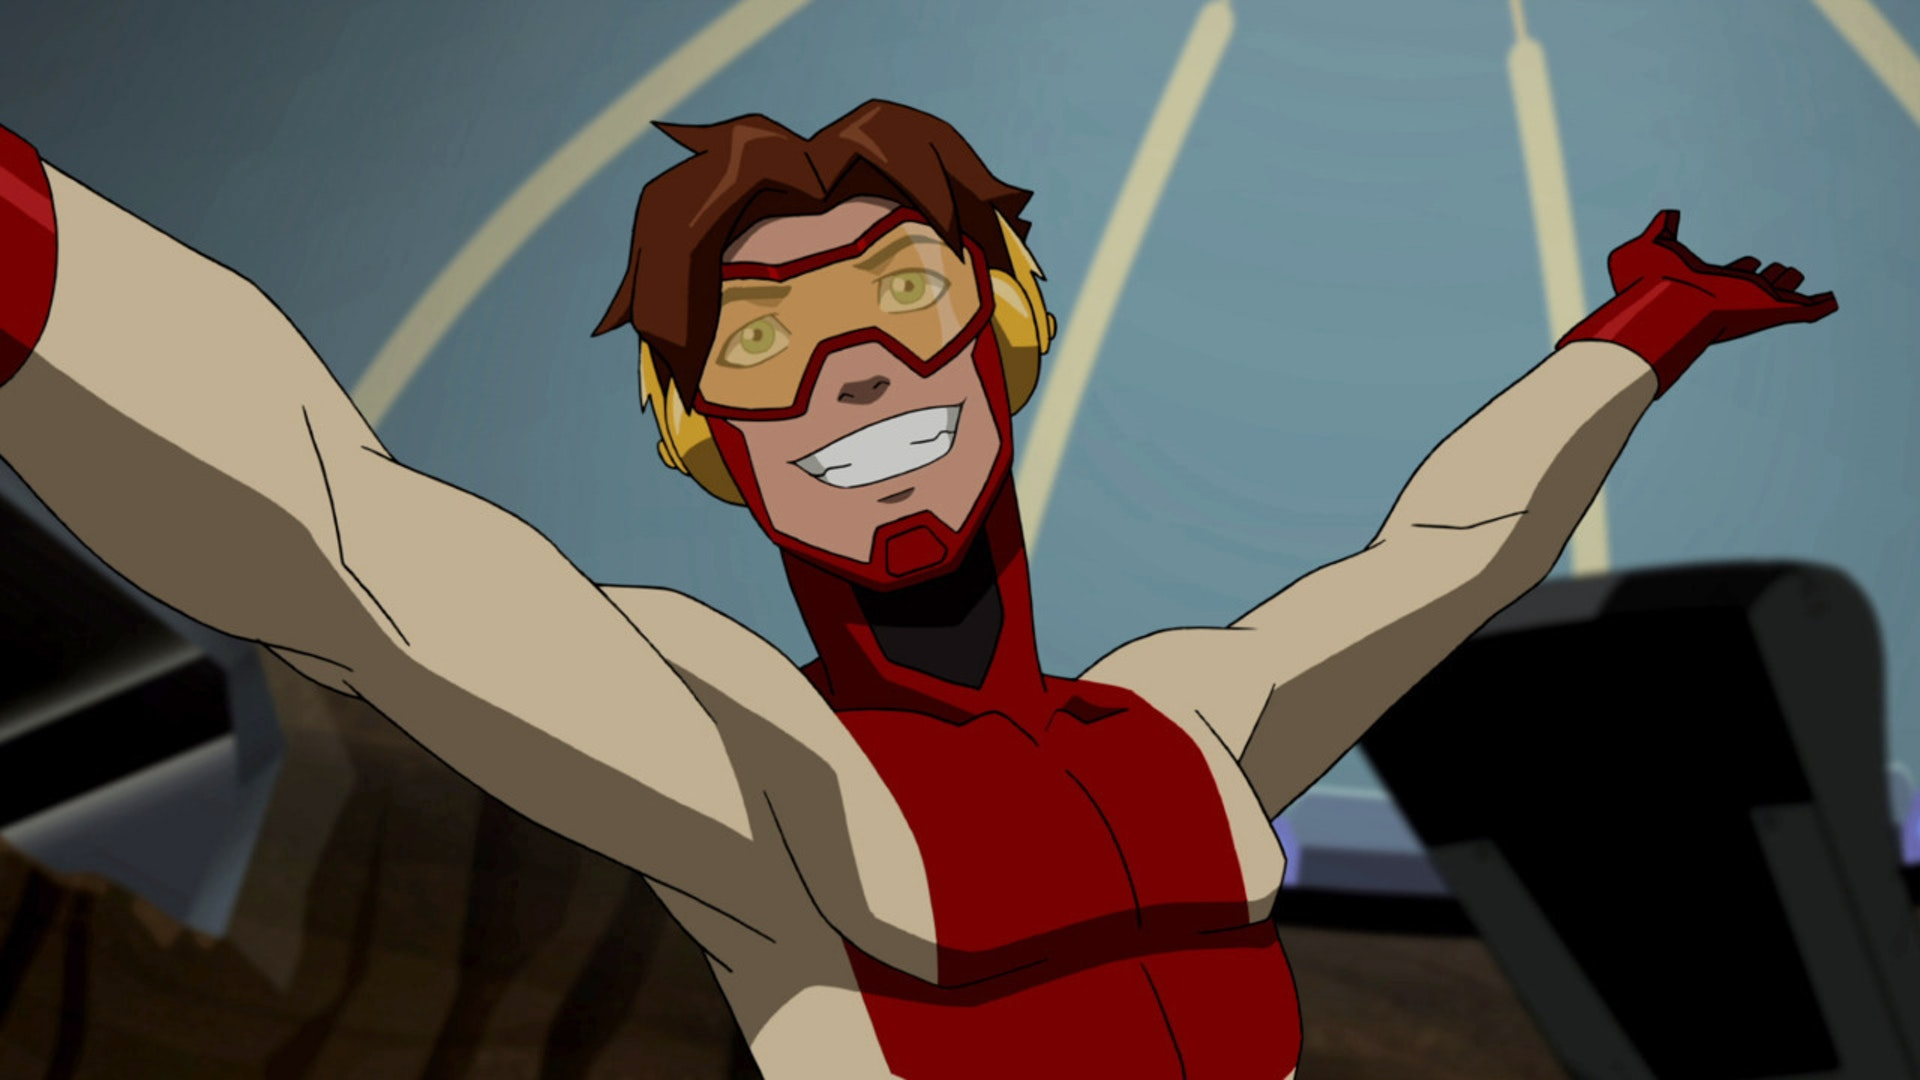 Impulse in DC's 'Young Justice' series that aired on Cartoon Network.